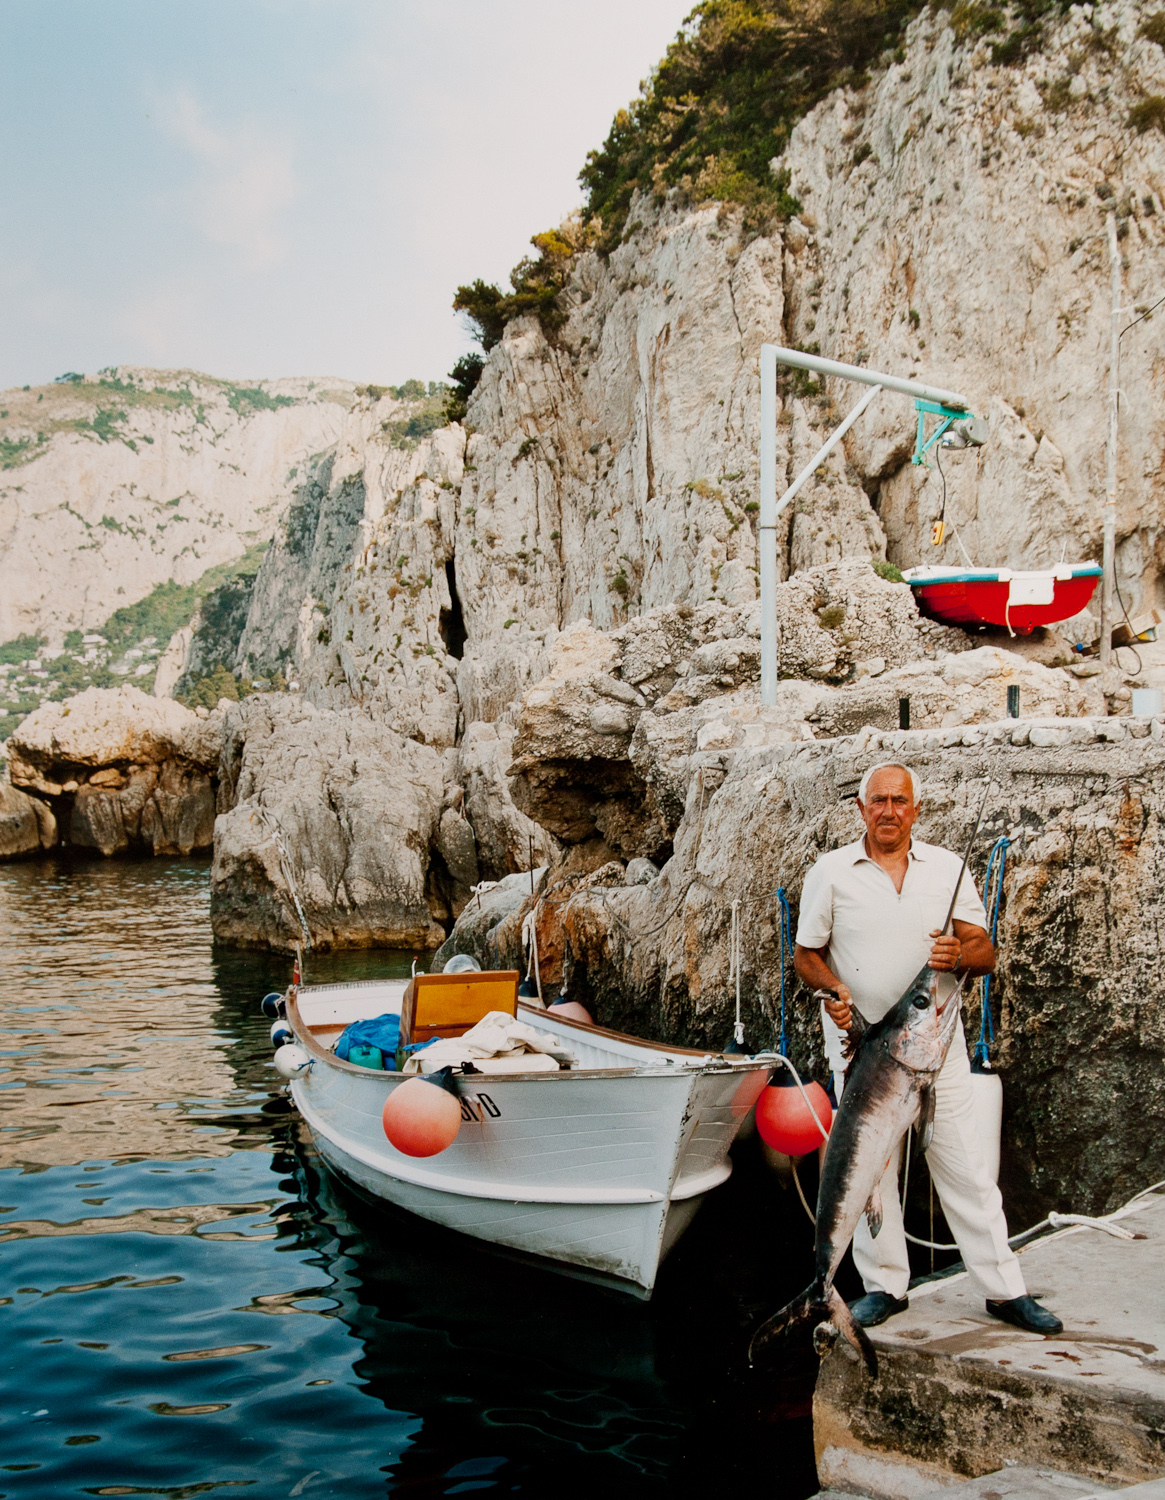 fisherman_capri (1 of 1).jpg